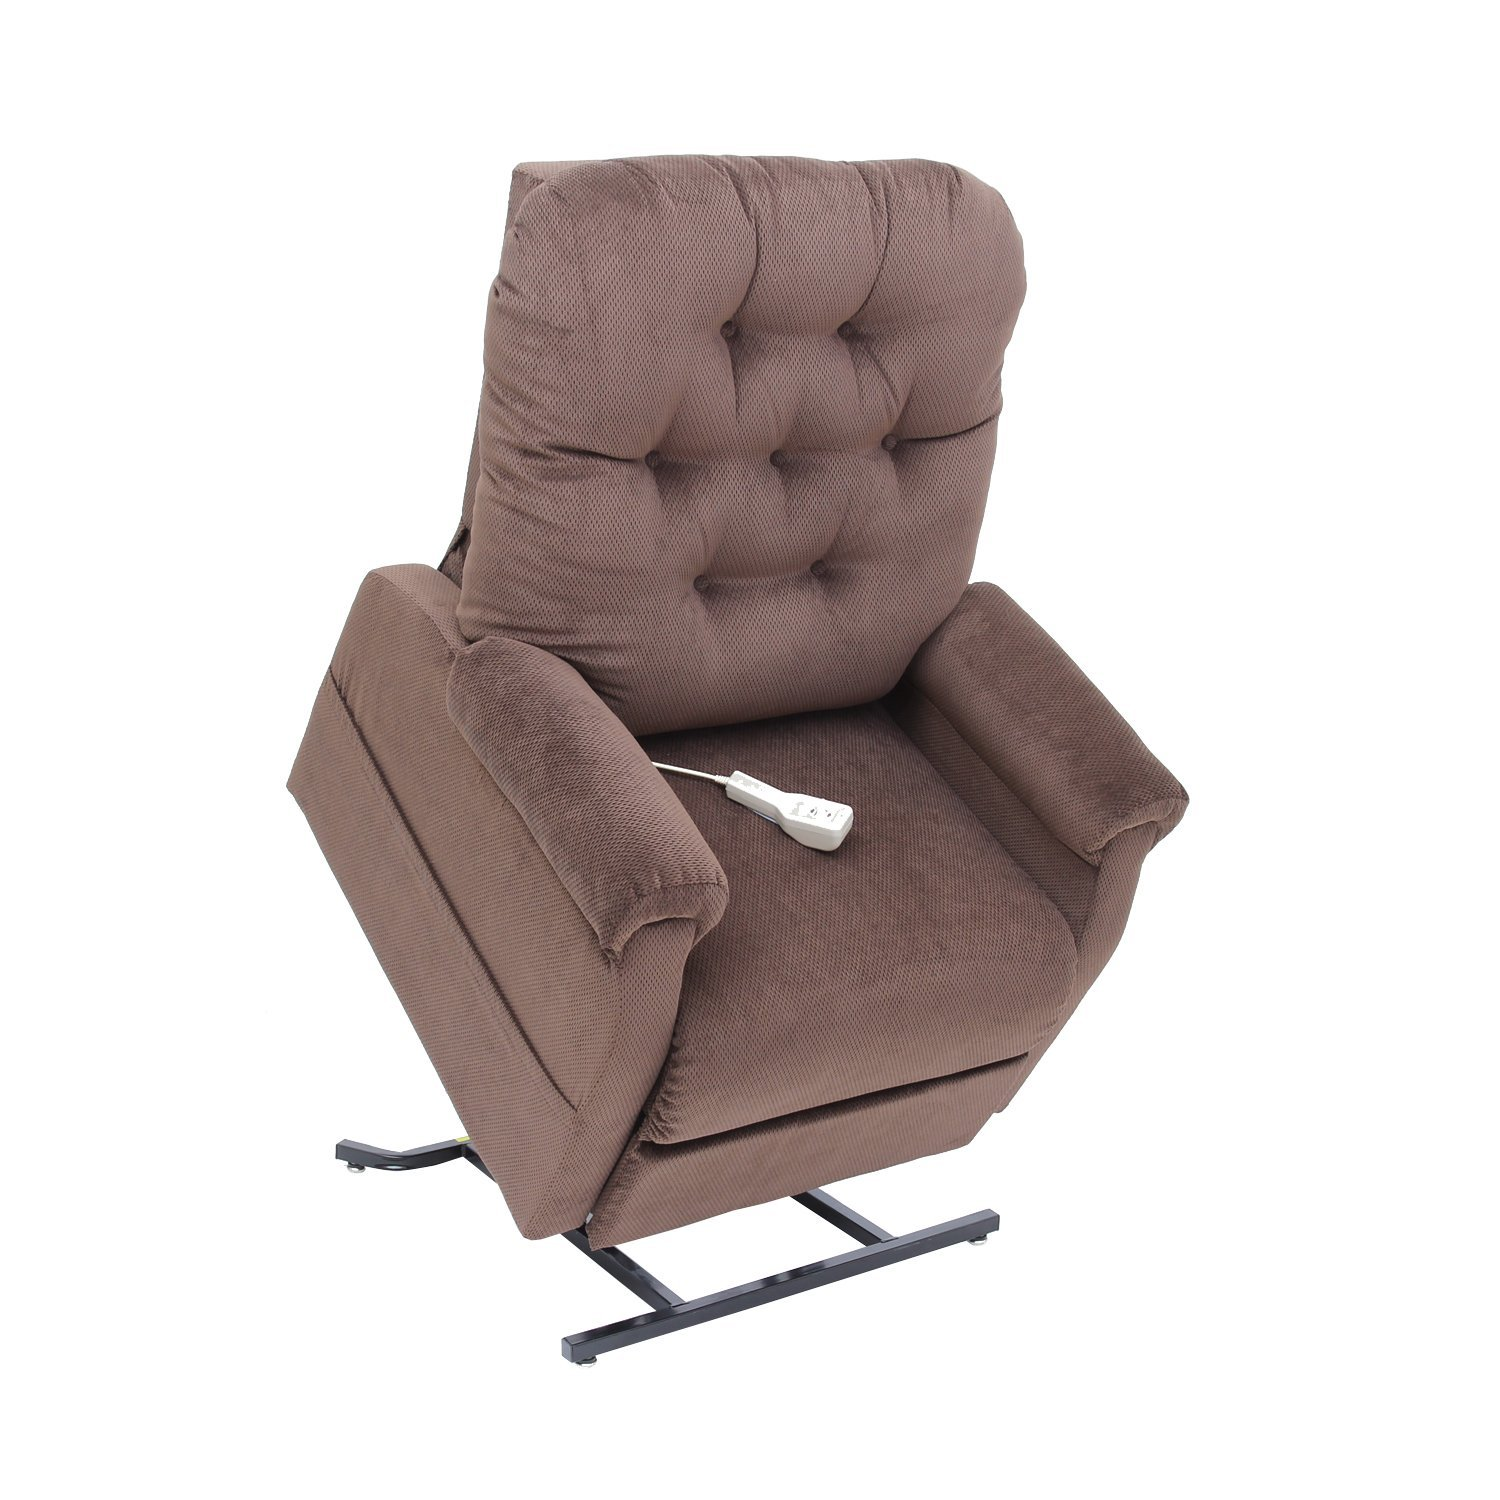 Sport Brella Recliner Chair Rest Old Tired Joints In A Reclining Chair Best Recliners